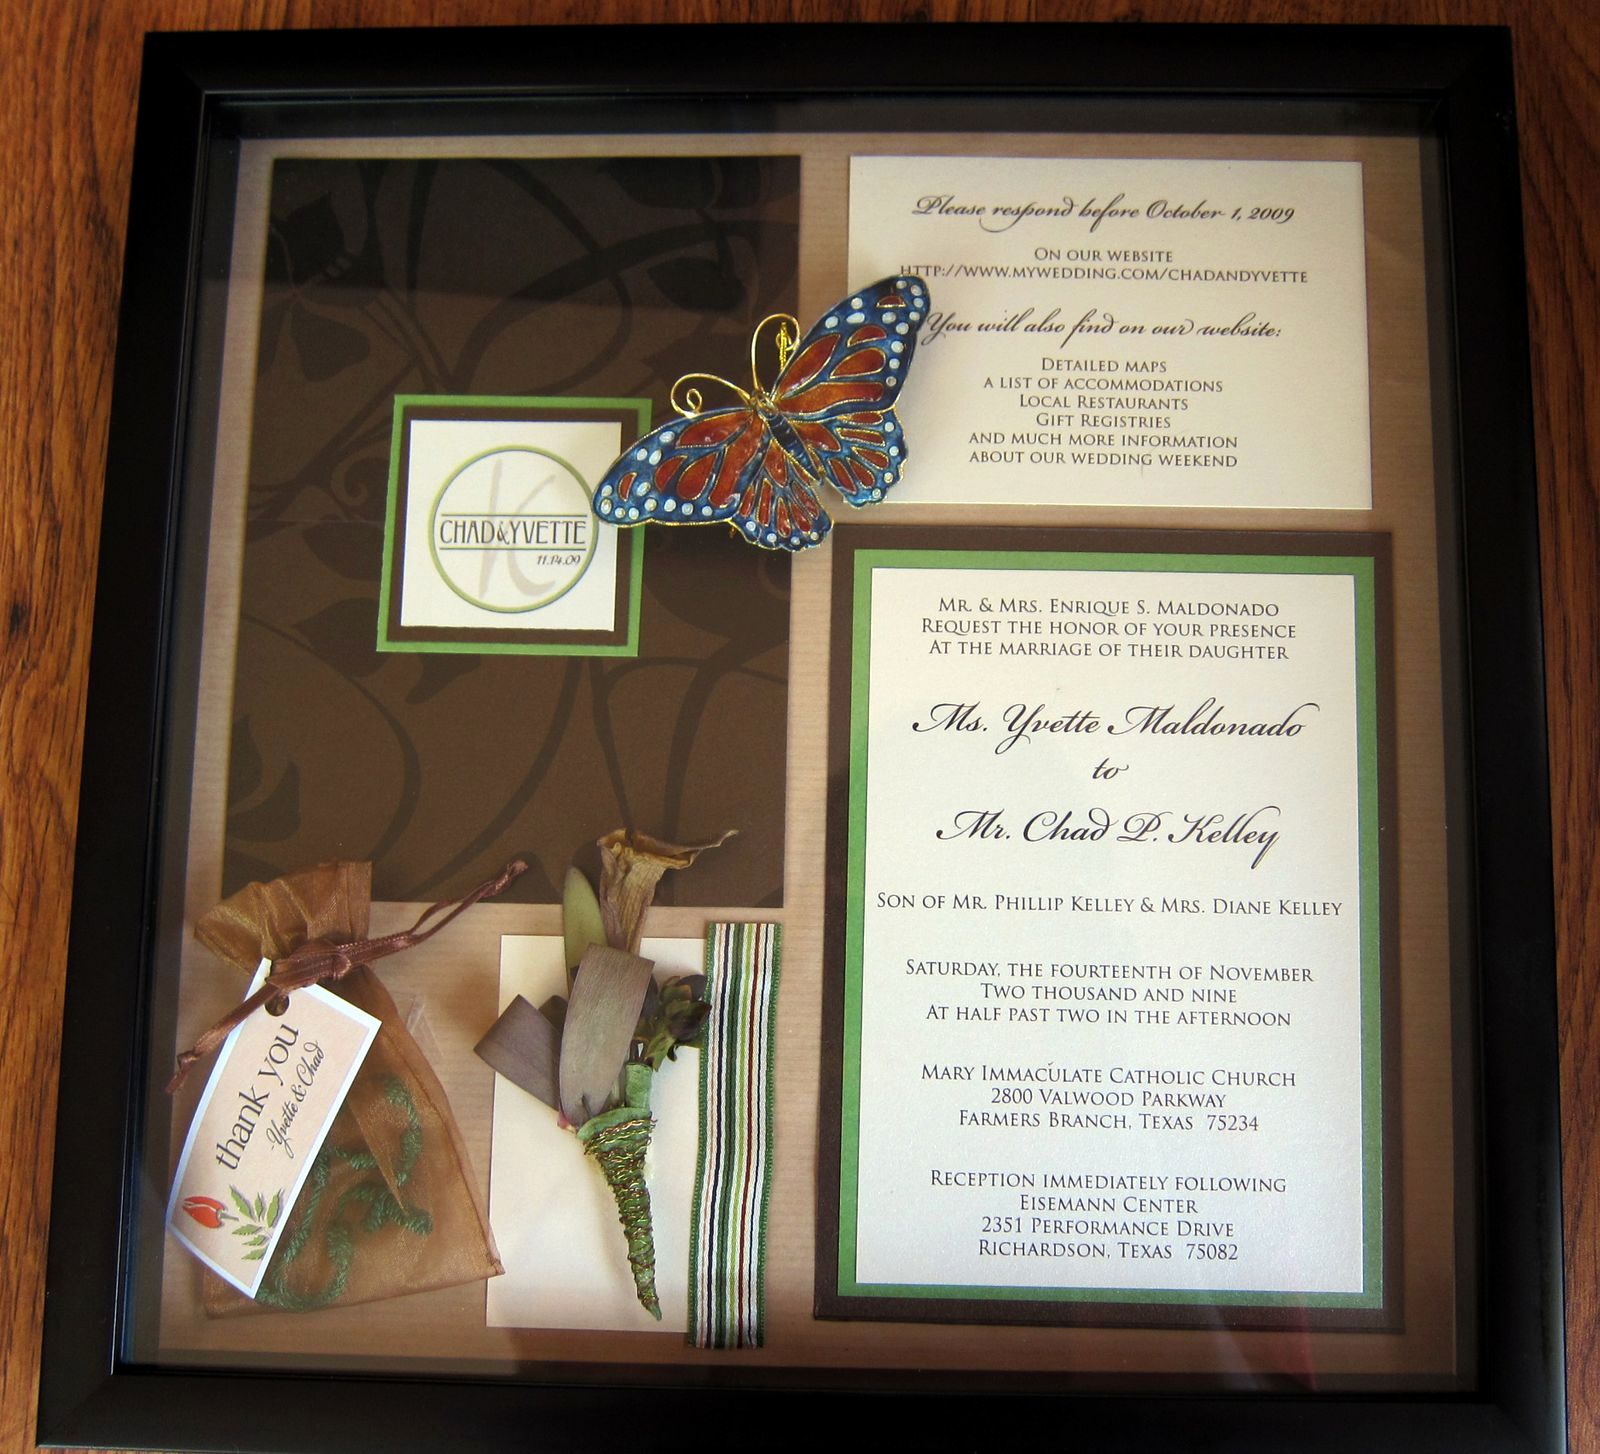 Wedding Invitation Shadow Box Ideas New Love & Food In the Big D Shadow Box Love